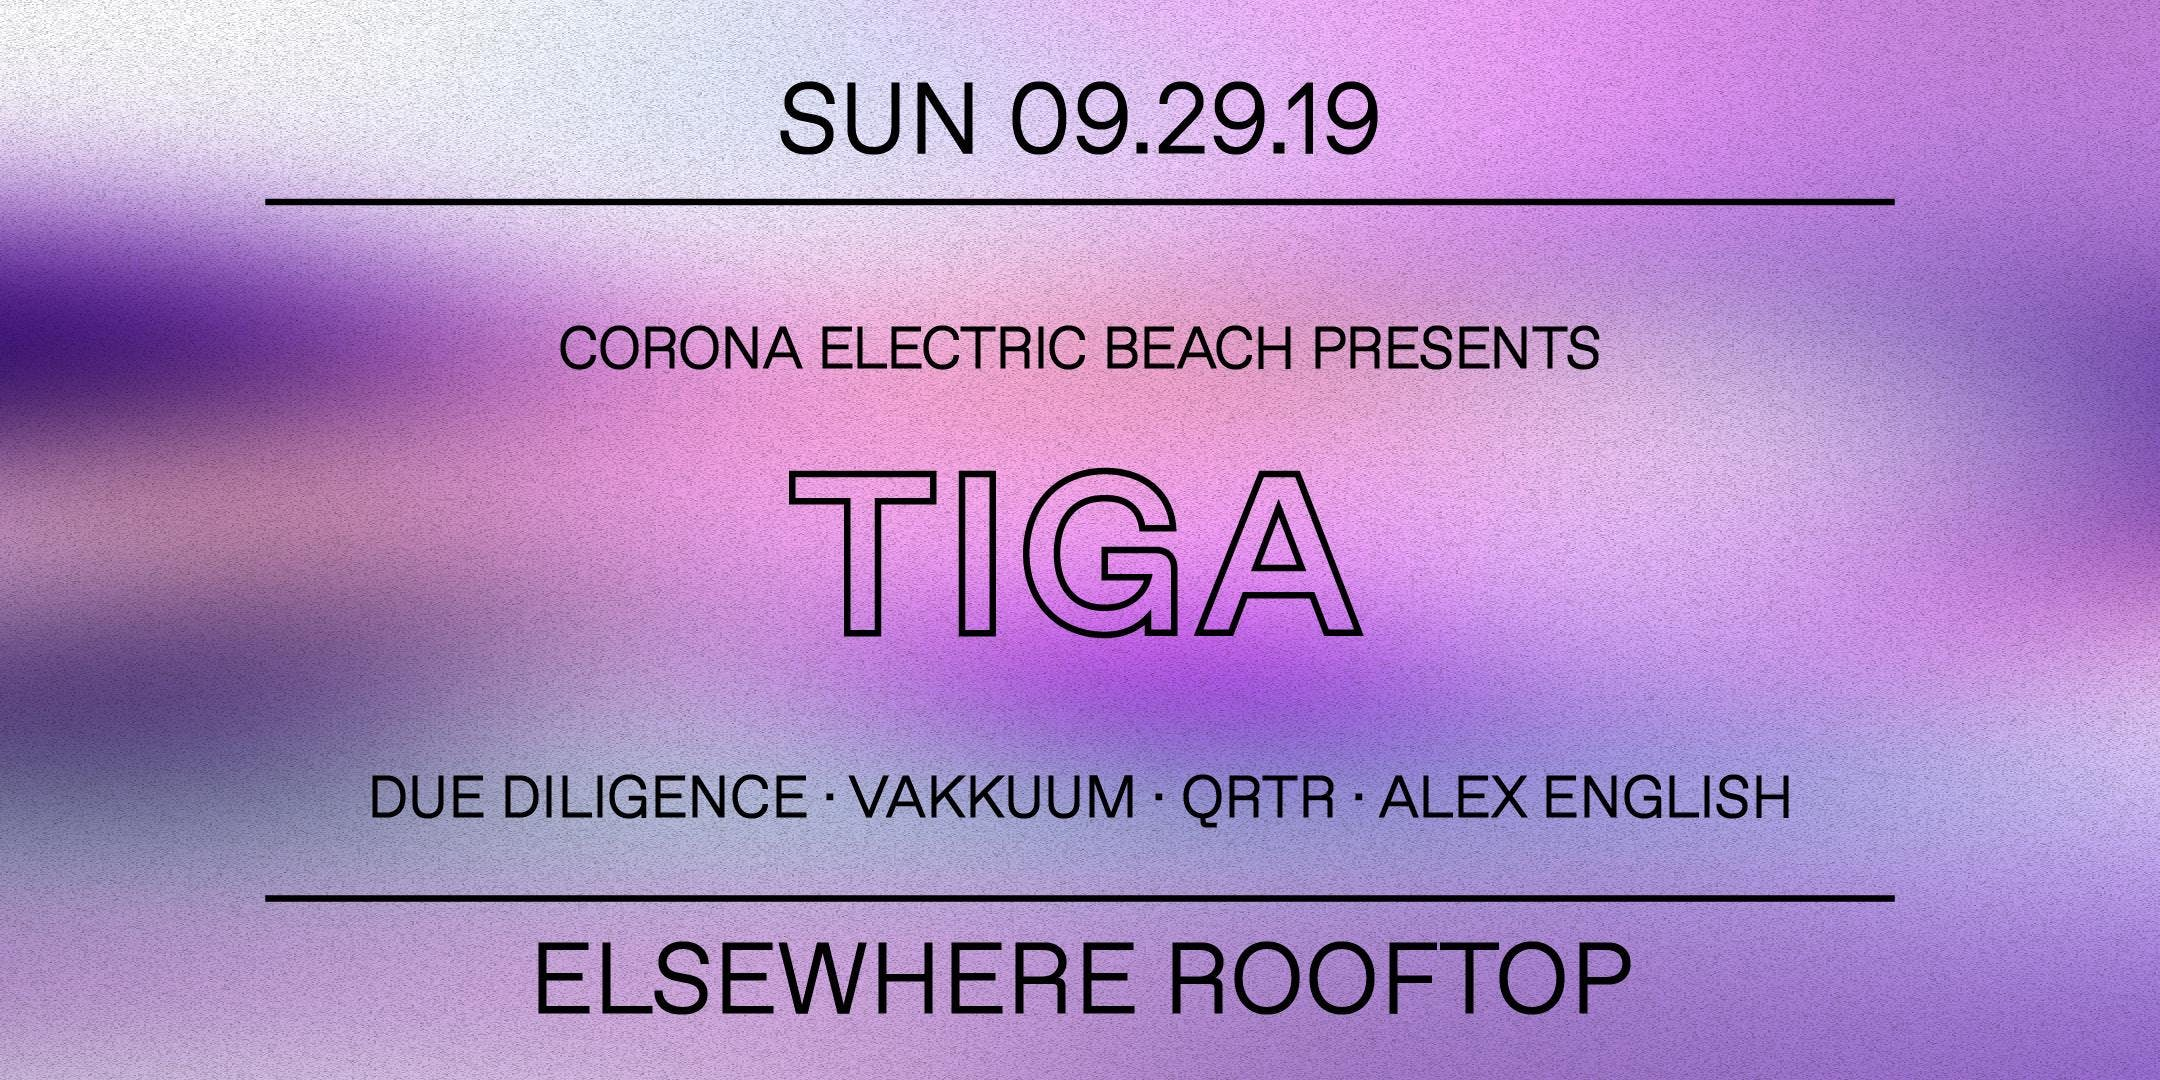 Corona Electric Beach Presents: TIGA, Due Diligence, Vakkuum, QRTR & Alex English